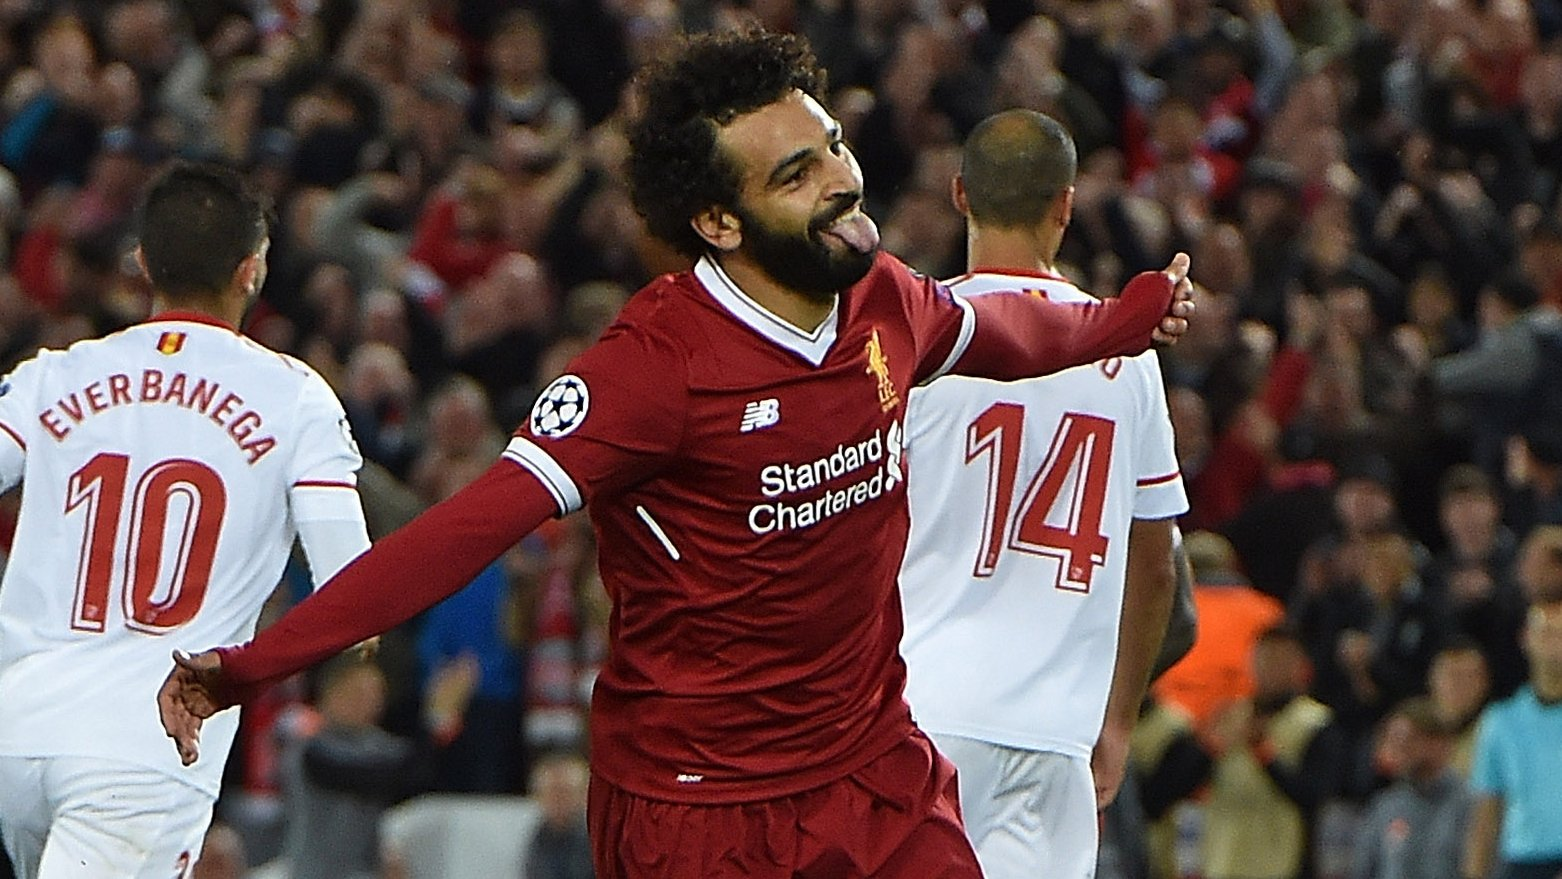 �� @22mosalah has been nominated for the @ChampionsLeague Player of the Week award: https://t.co/NKi3CLeXSS https://t.co/6KBhPwRI17